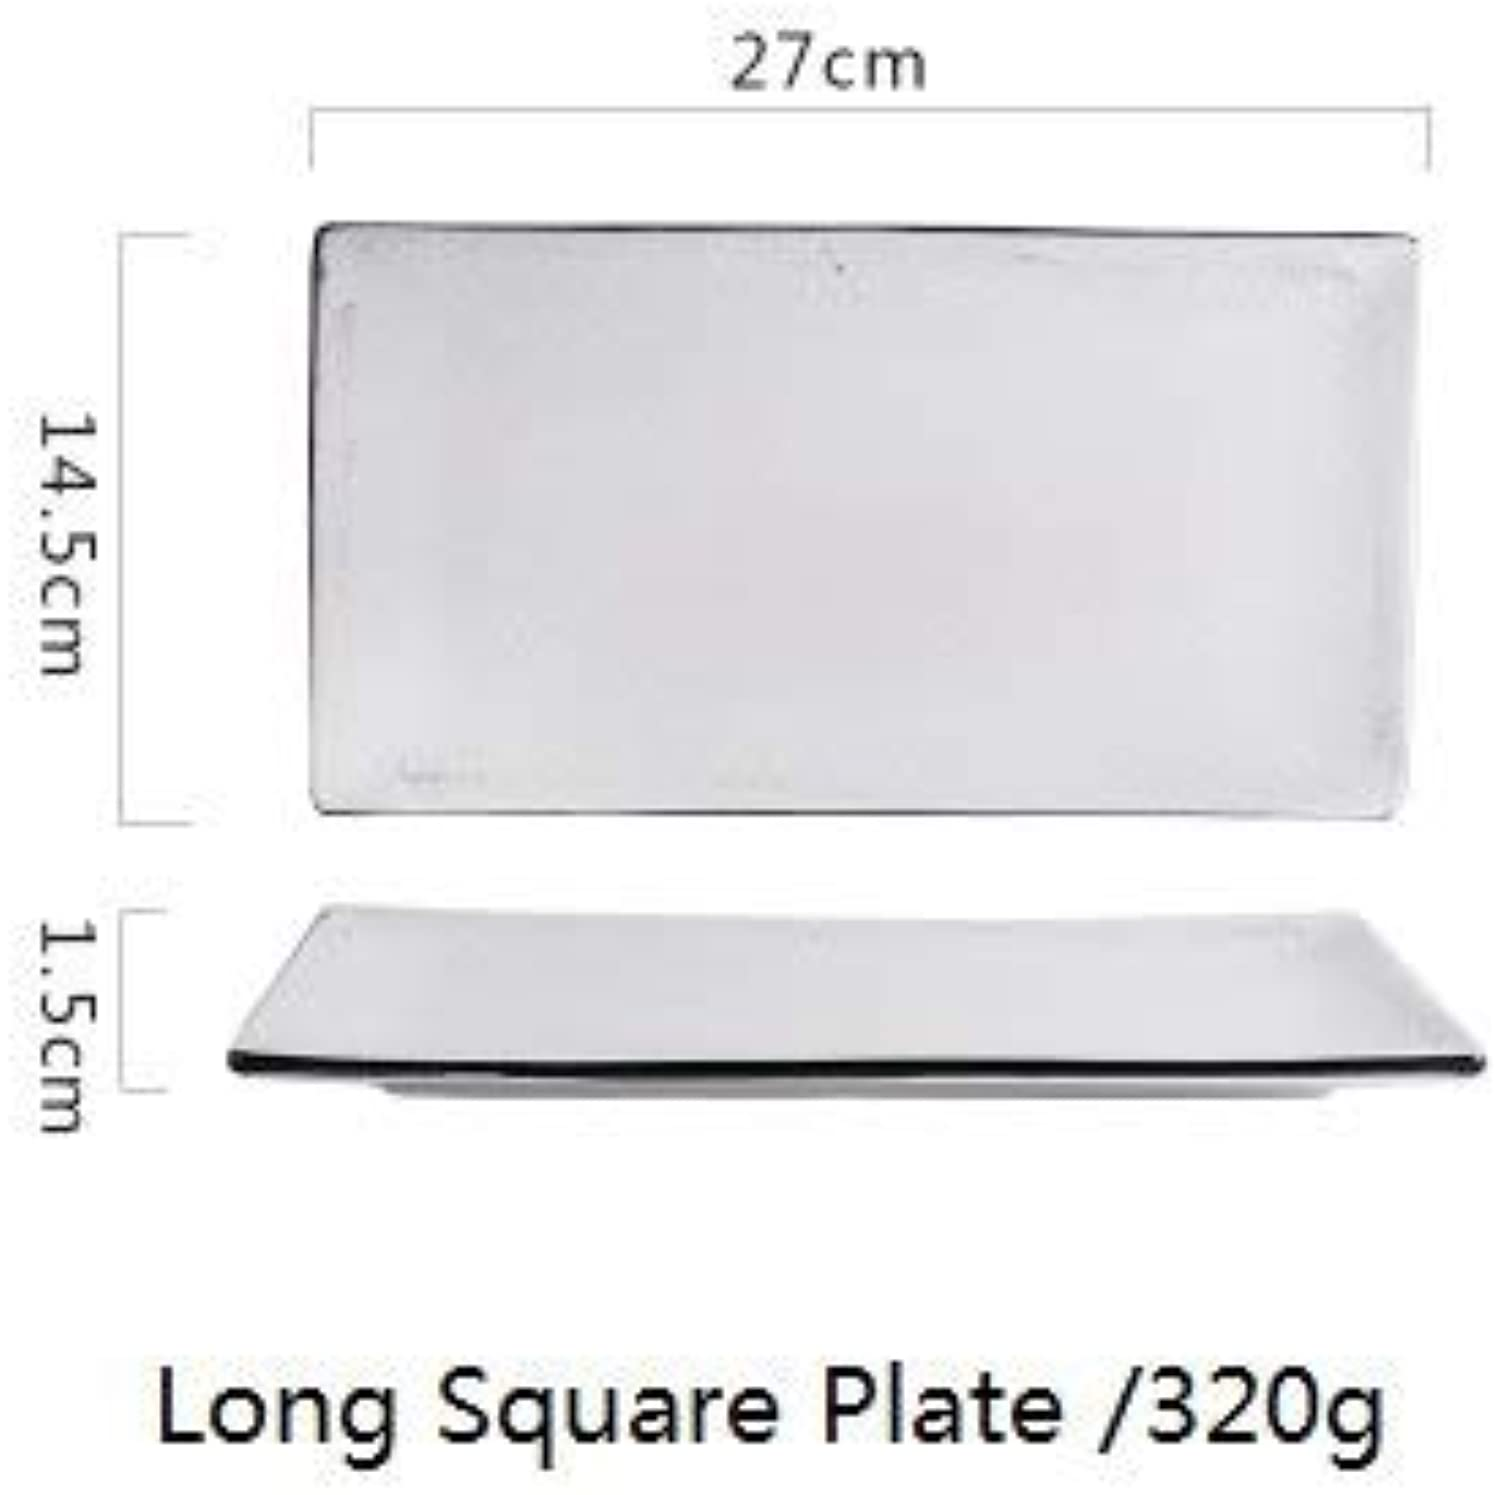 Nor and 2 olor erami Tableware matt finihing nner Plate Pot wholeale r Bowl for New houe mog   Long Plate (W)